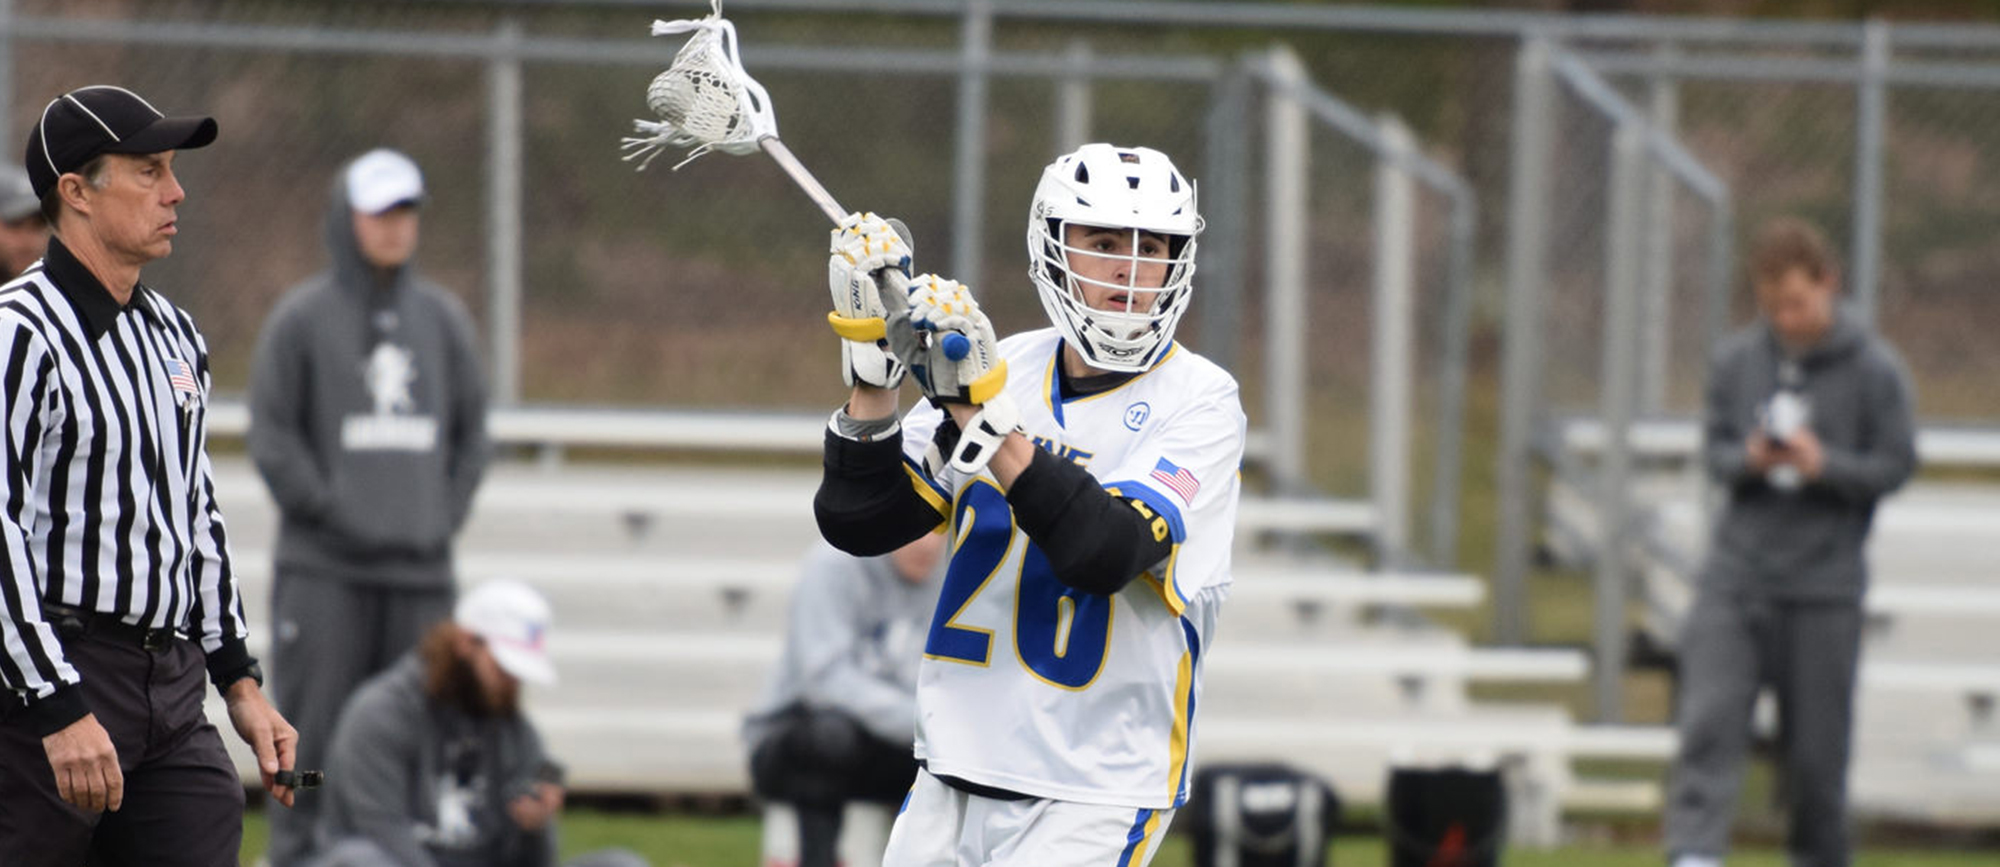 Jared Ward produced a season-high eight points (four goals, four assists) in Western New England's 15-8 win over Wentworth on Sunday. (Photo by Rachael Margossian)